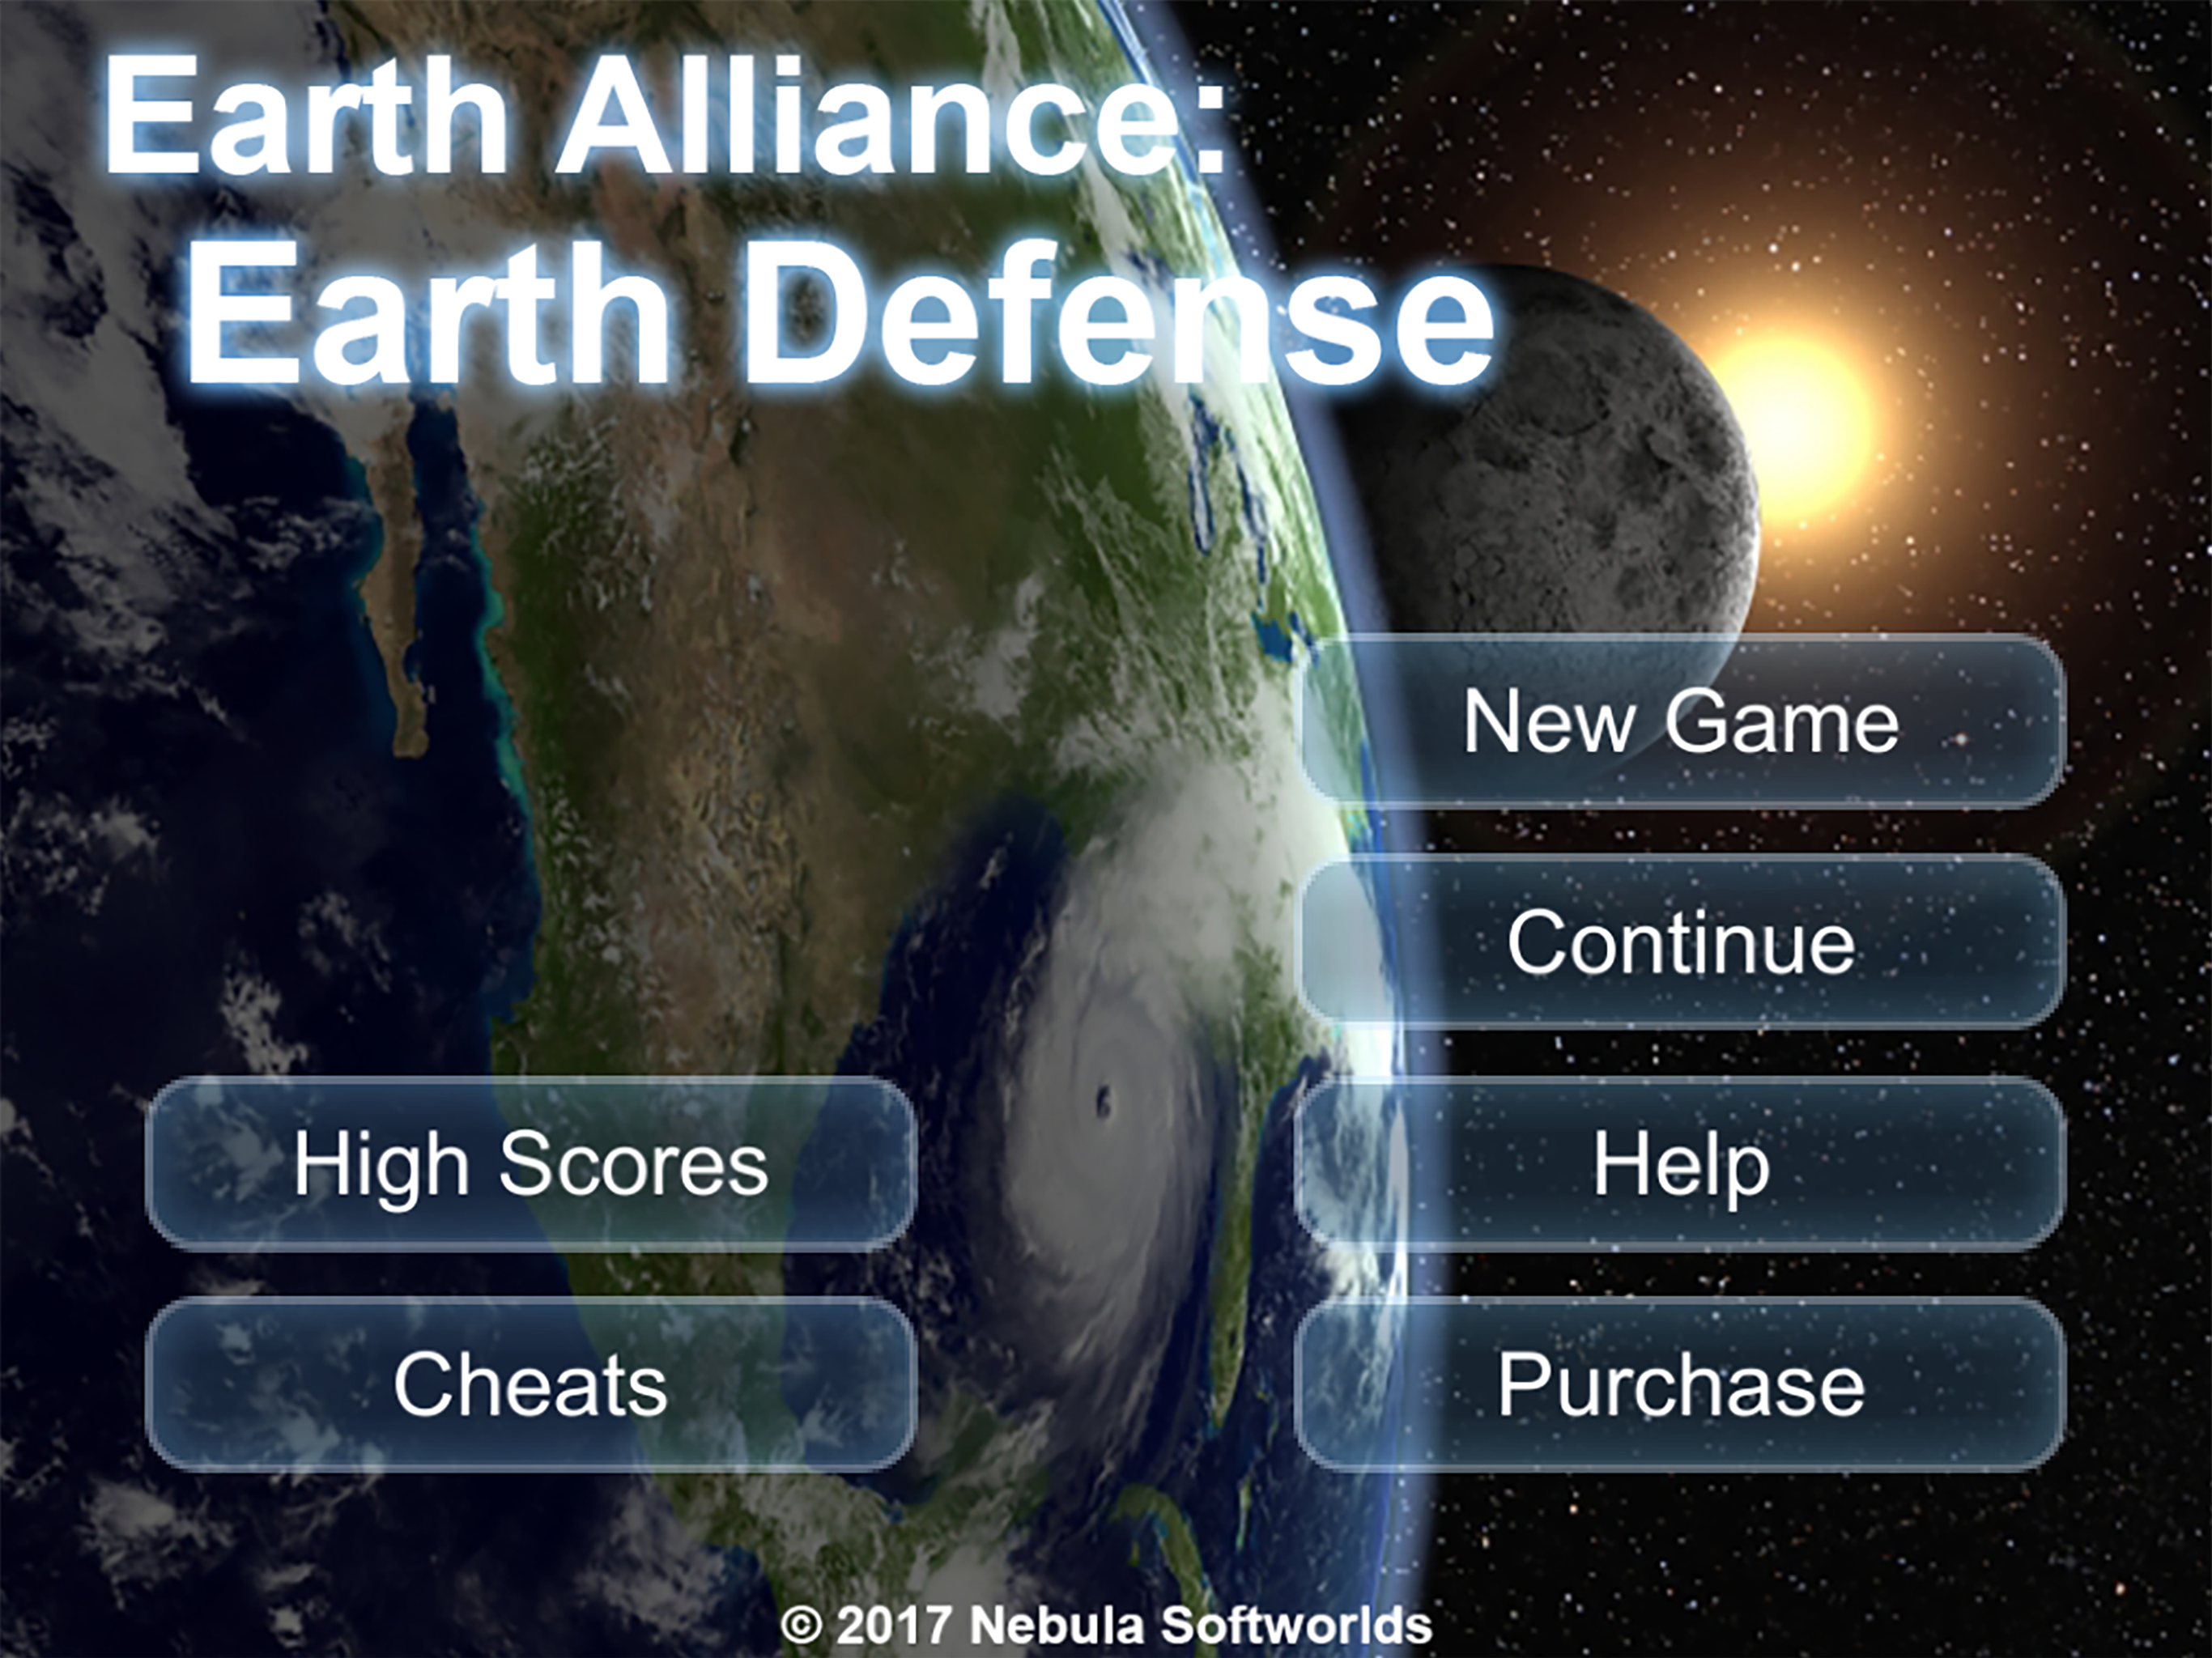 Earth Alliance: Earth Defense